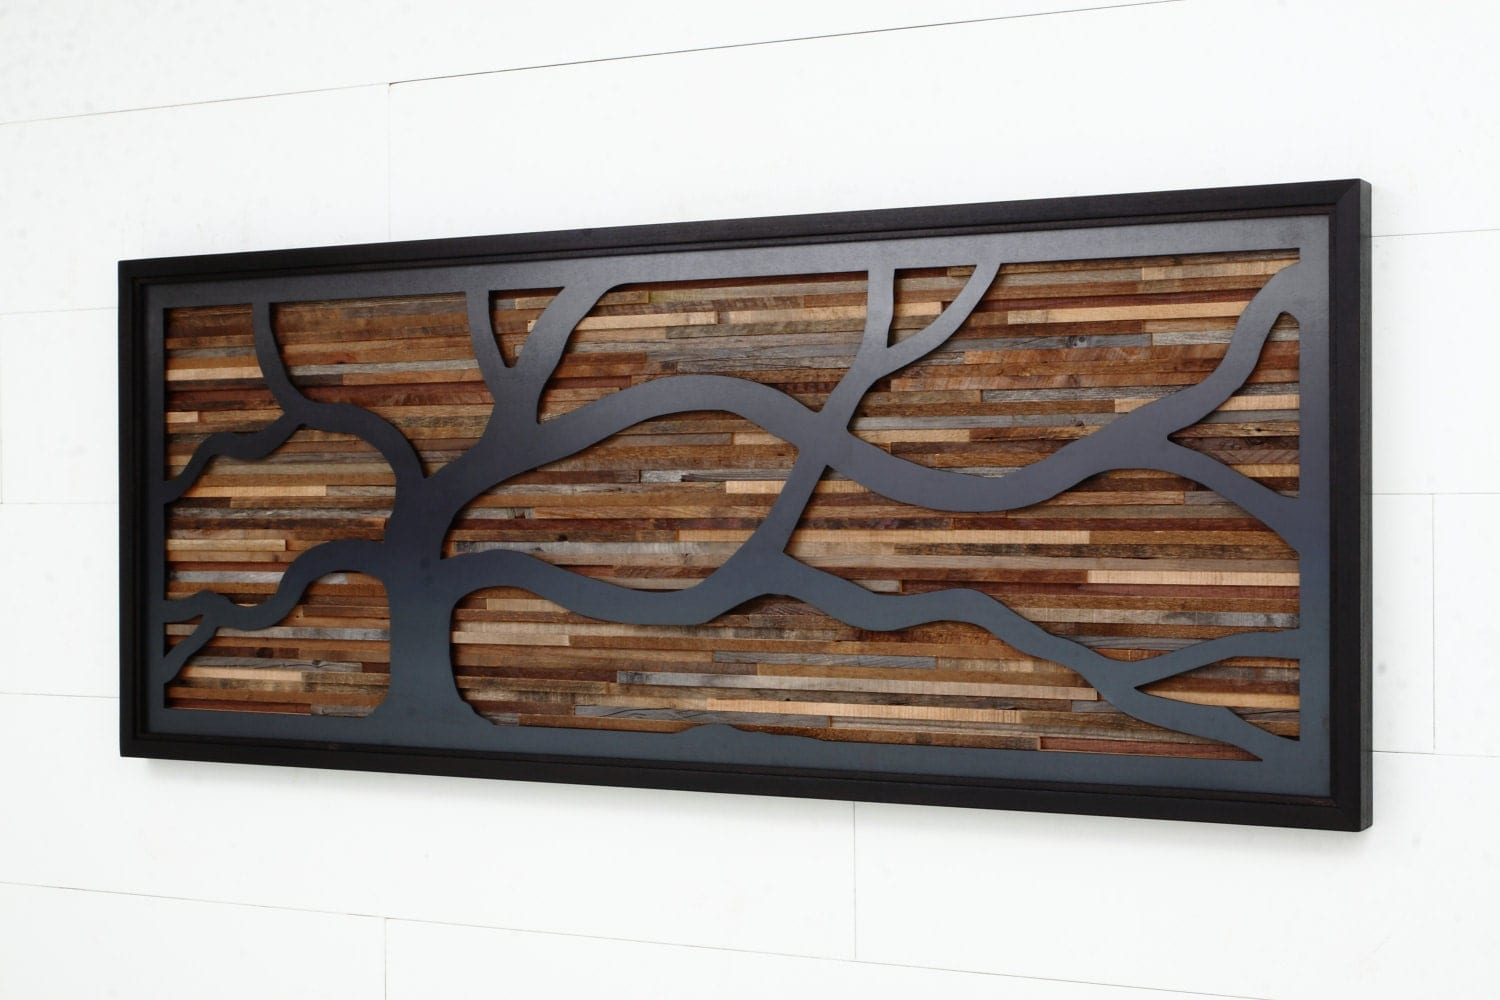 Wood wall art made of old reclaimed barnwood with a wind for Barnwood decor